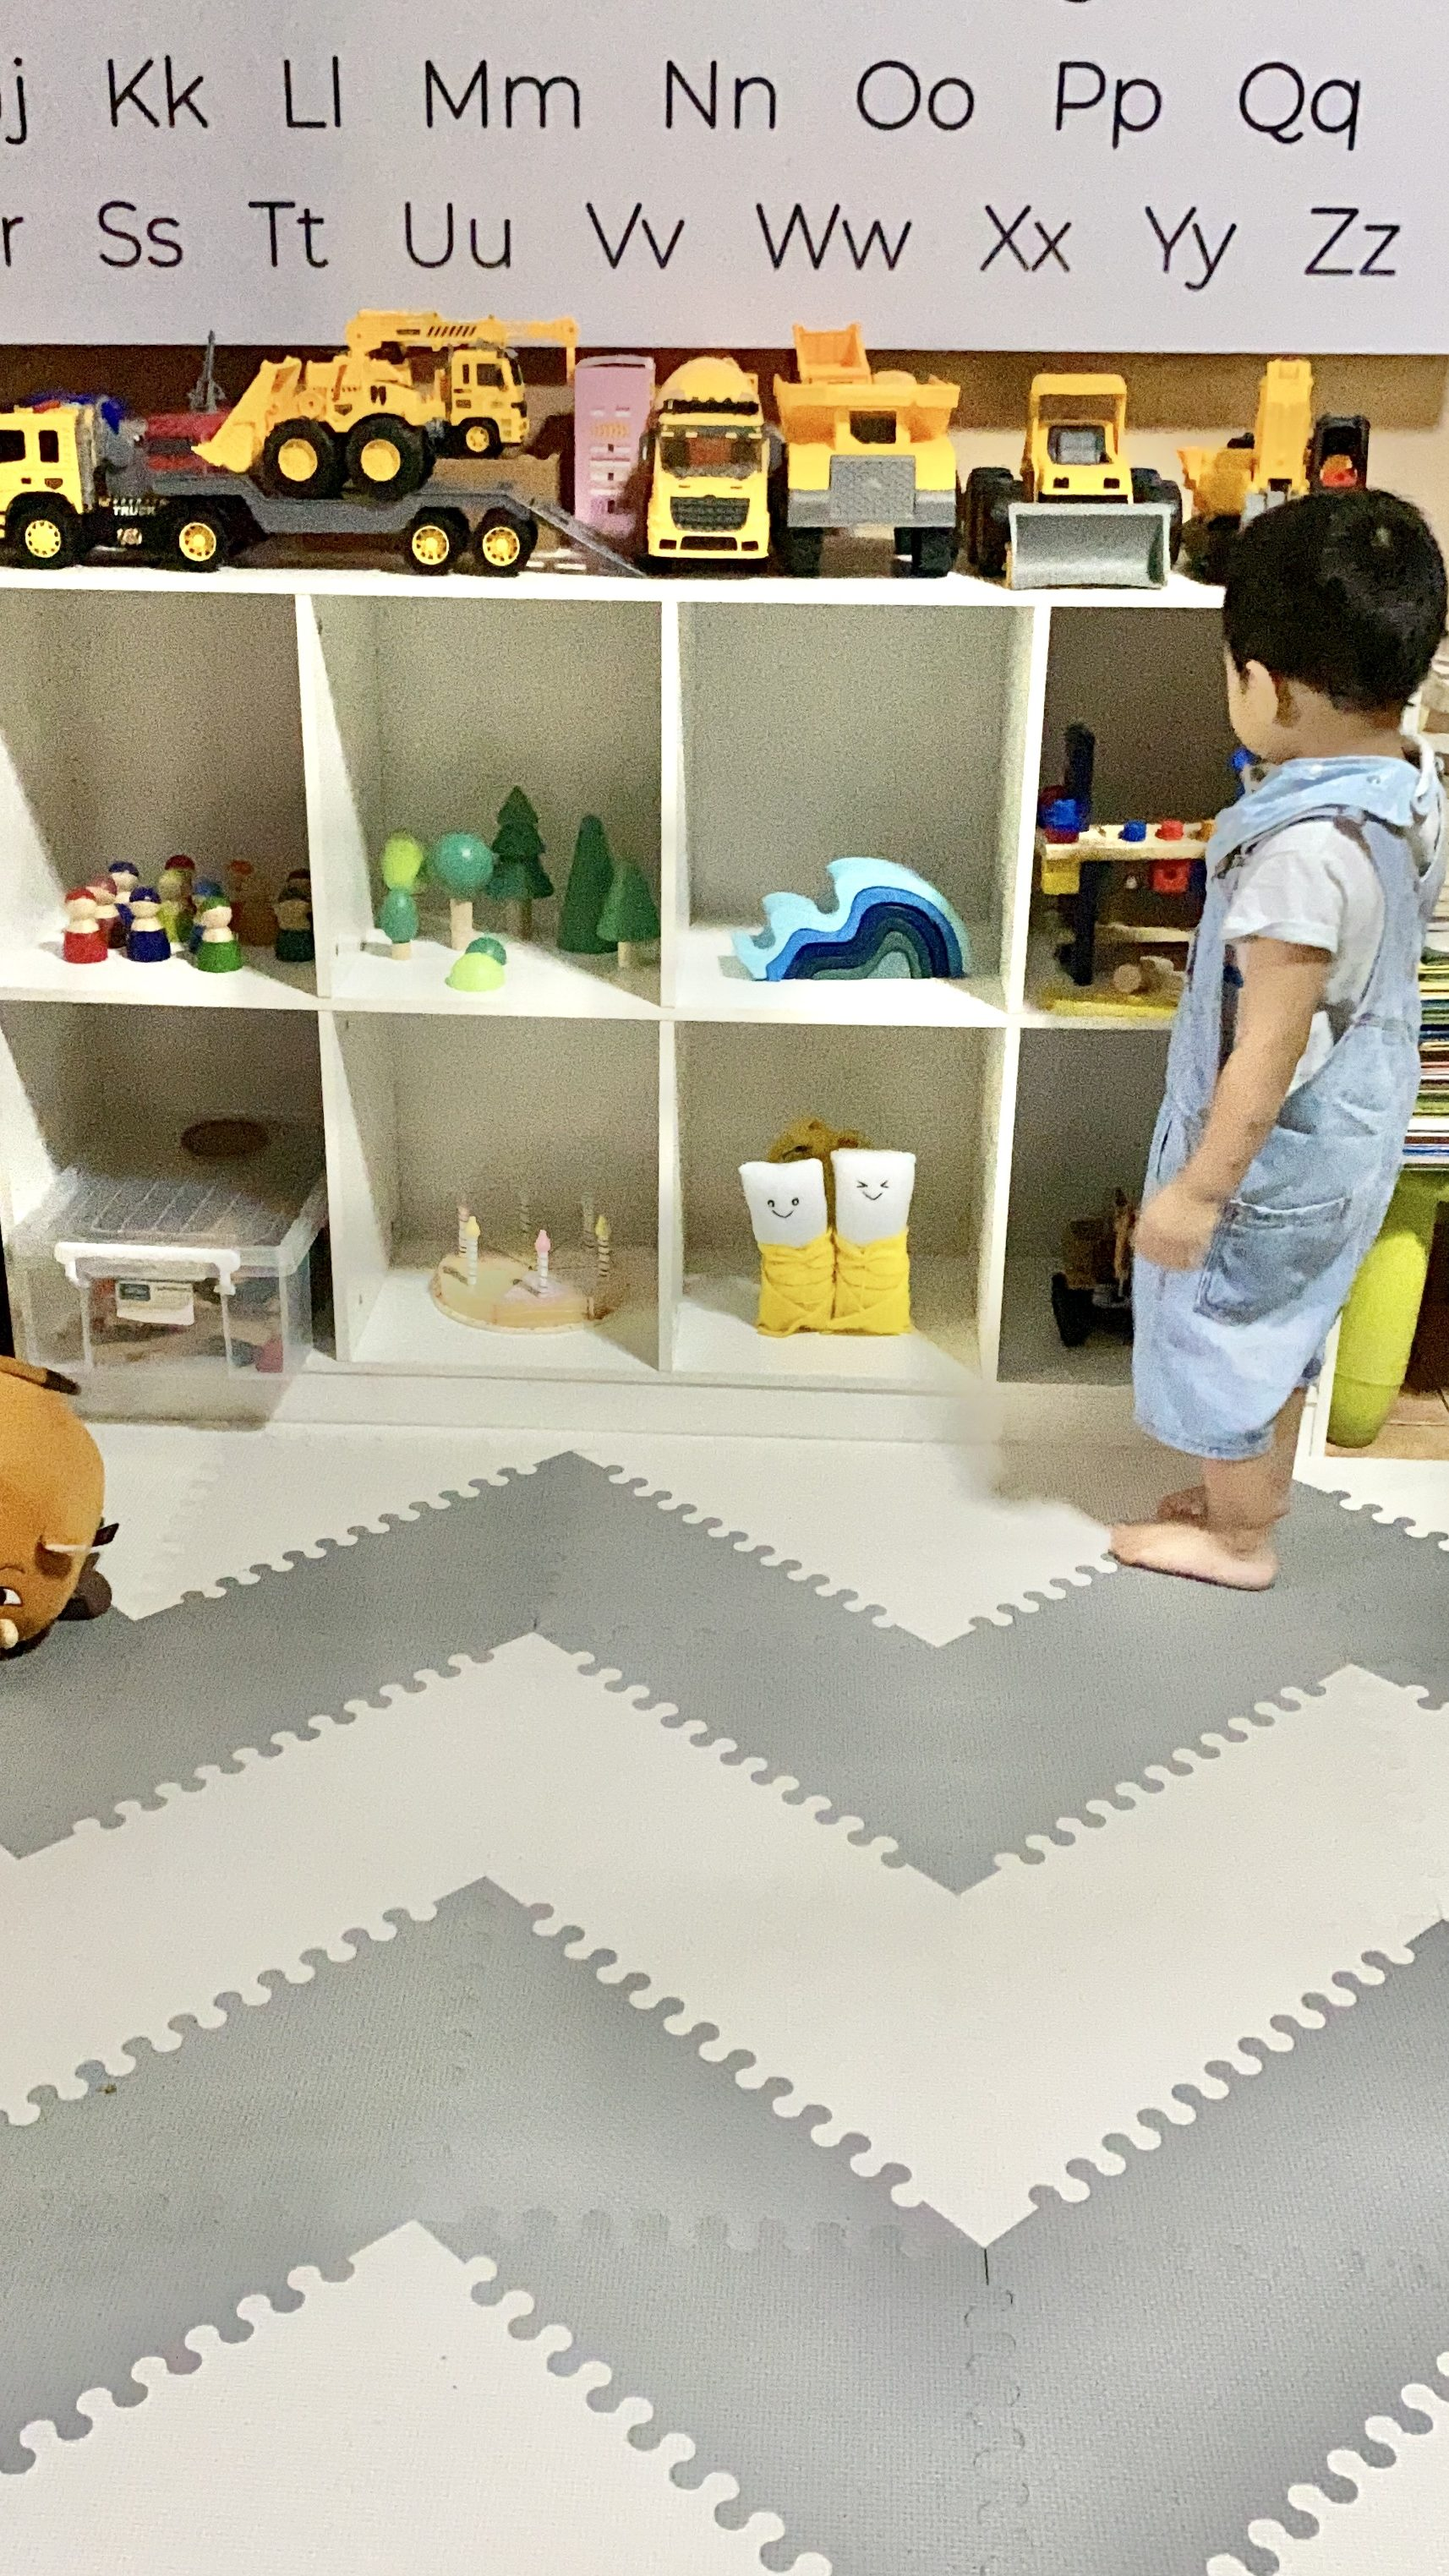 Minimalist gray and white play area